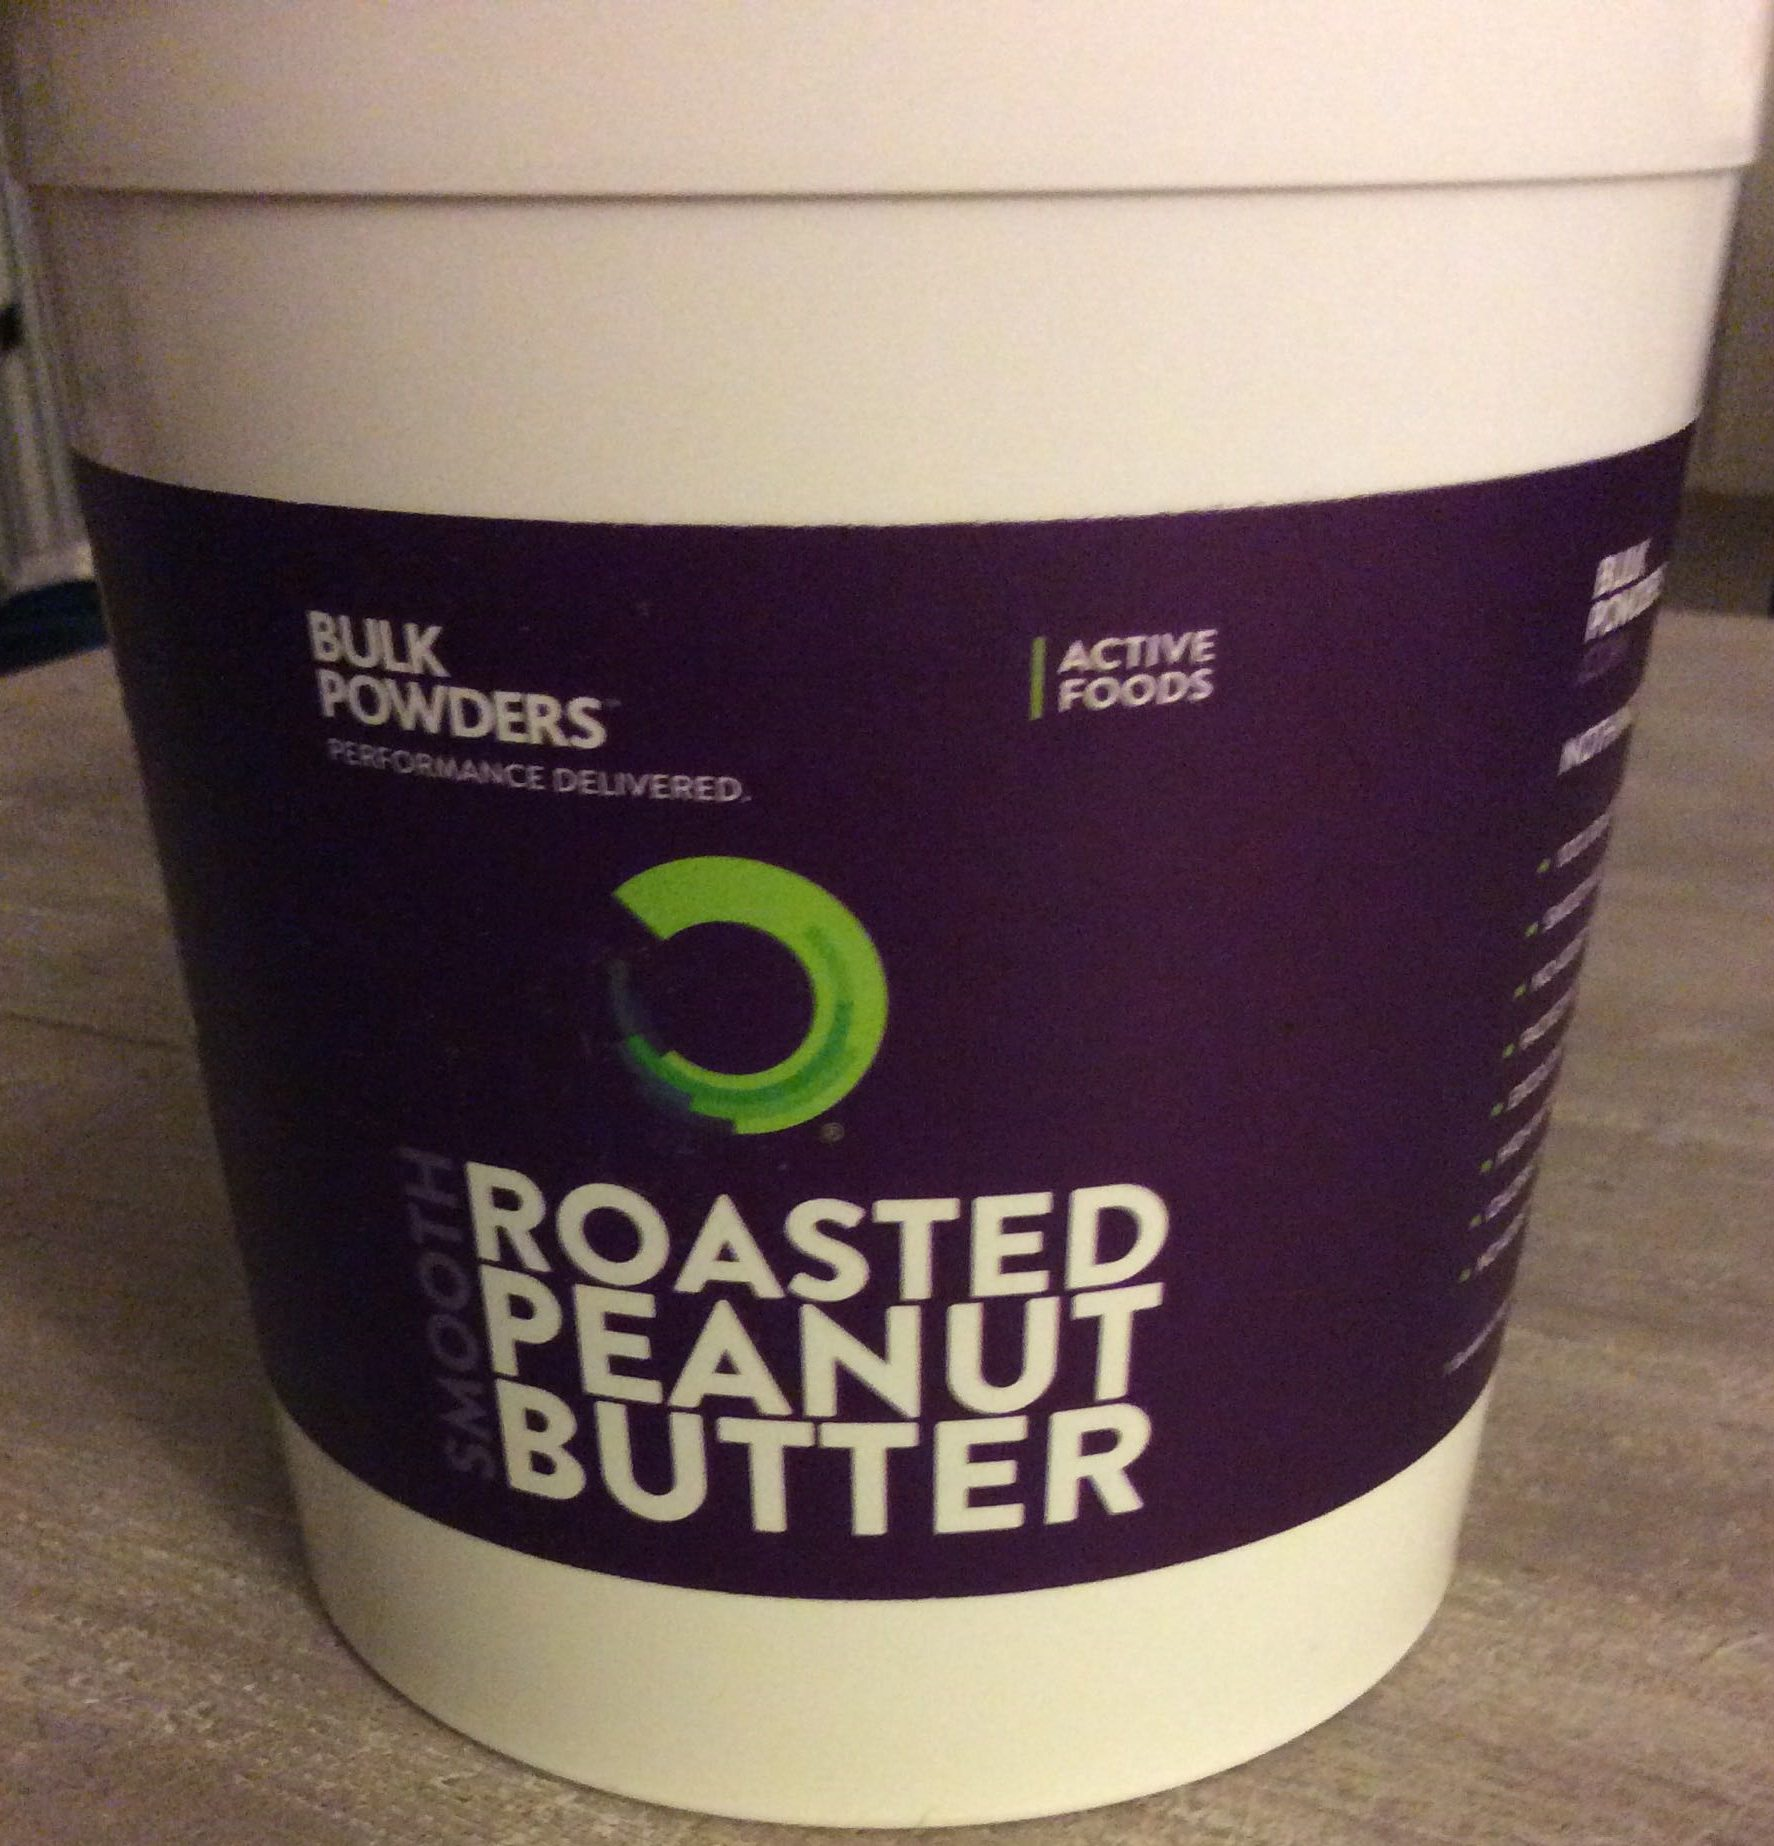 Roasted peanut butter - Product